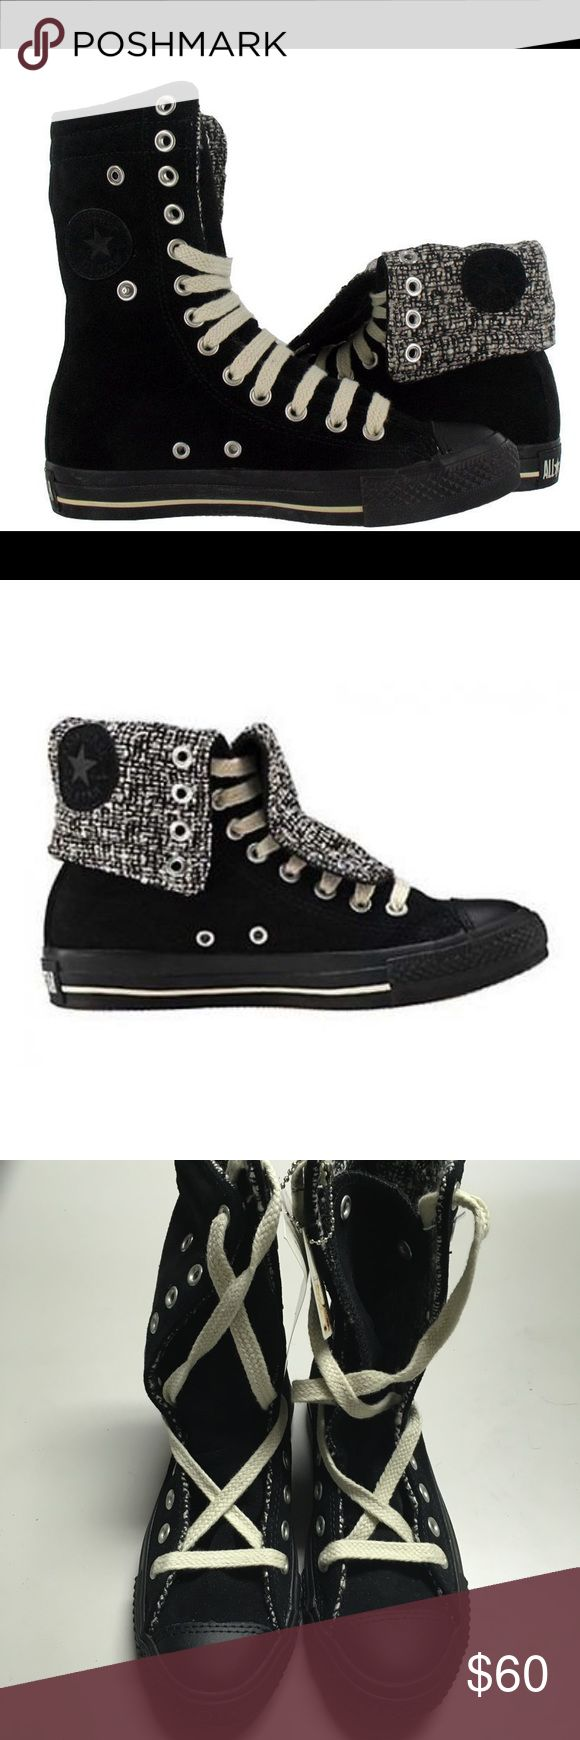 Converse Black Suede & Tweed X-Hi Sneakers BRAND NEW WITH TAGS & BOX. These originally cost $85 and are completely sold out from the Converse website. The exterior of these shoes are black suede and the interior features black and white tweed. These sneakers can be worn two ways and are very versatile. Everyone needs a pair of fashionable and functional Converse! The sizes are in Women's. Converse Shoes